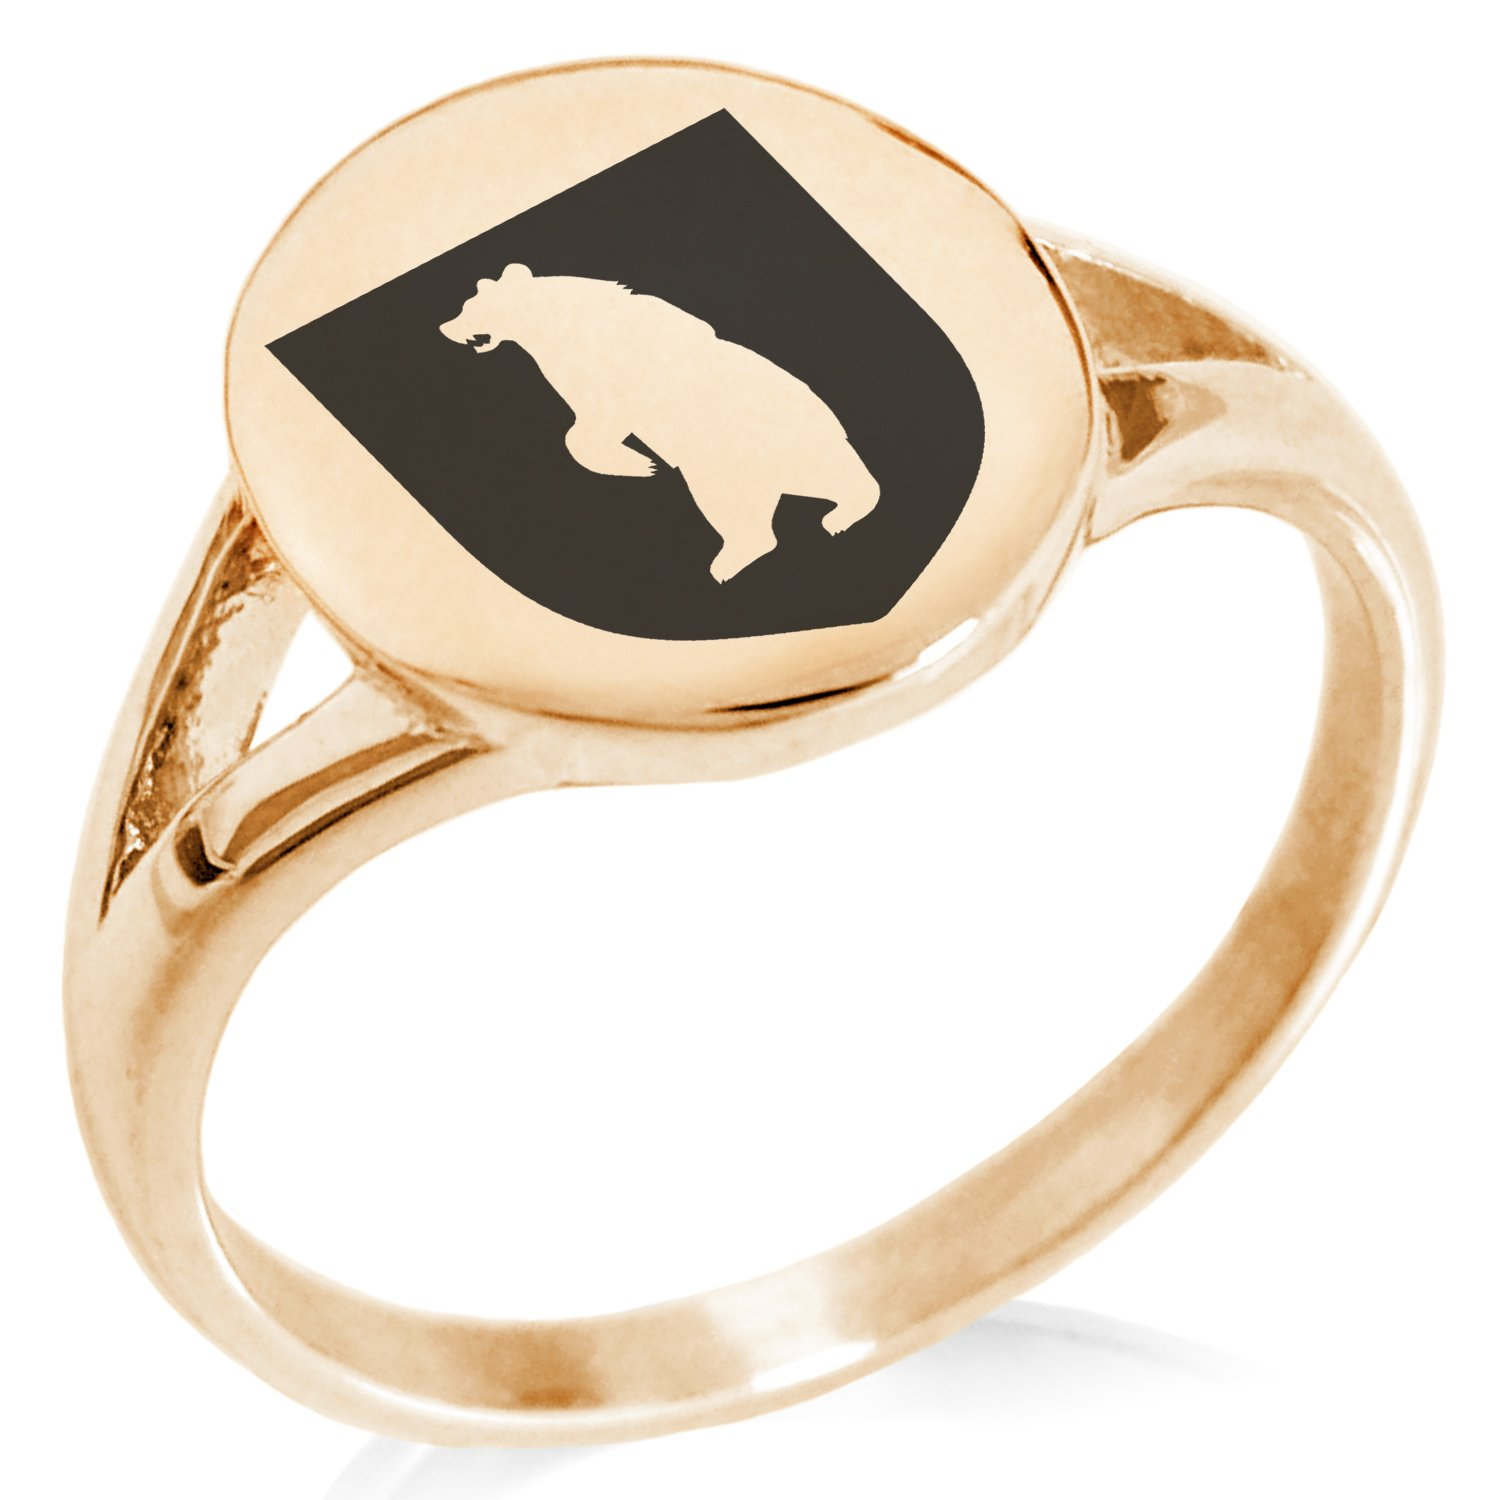 Tioneer Rose Gold Plated Stainless Steel Bear Ferocity Coat of Arms Shield Symbol Minimalist Oval Top Polished Statement Ring, Size 8